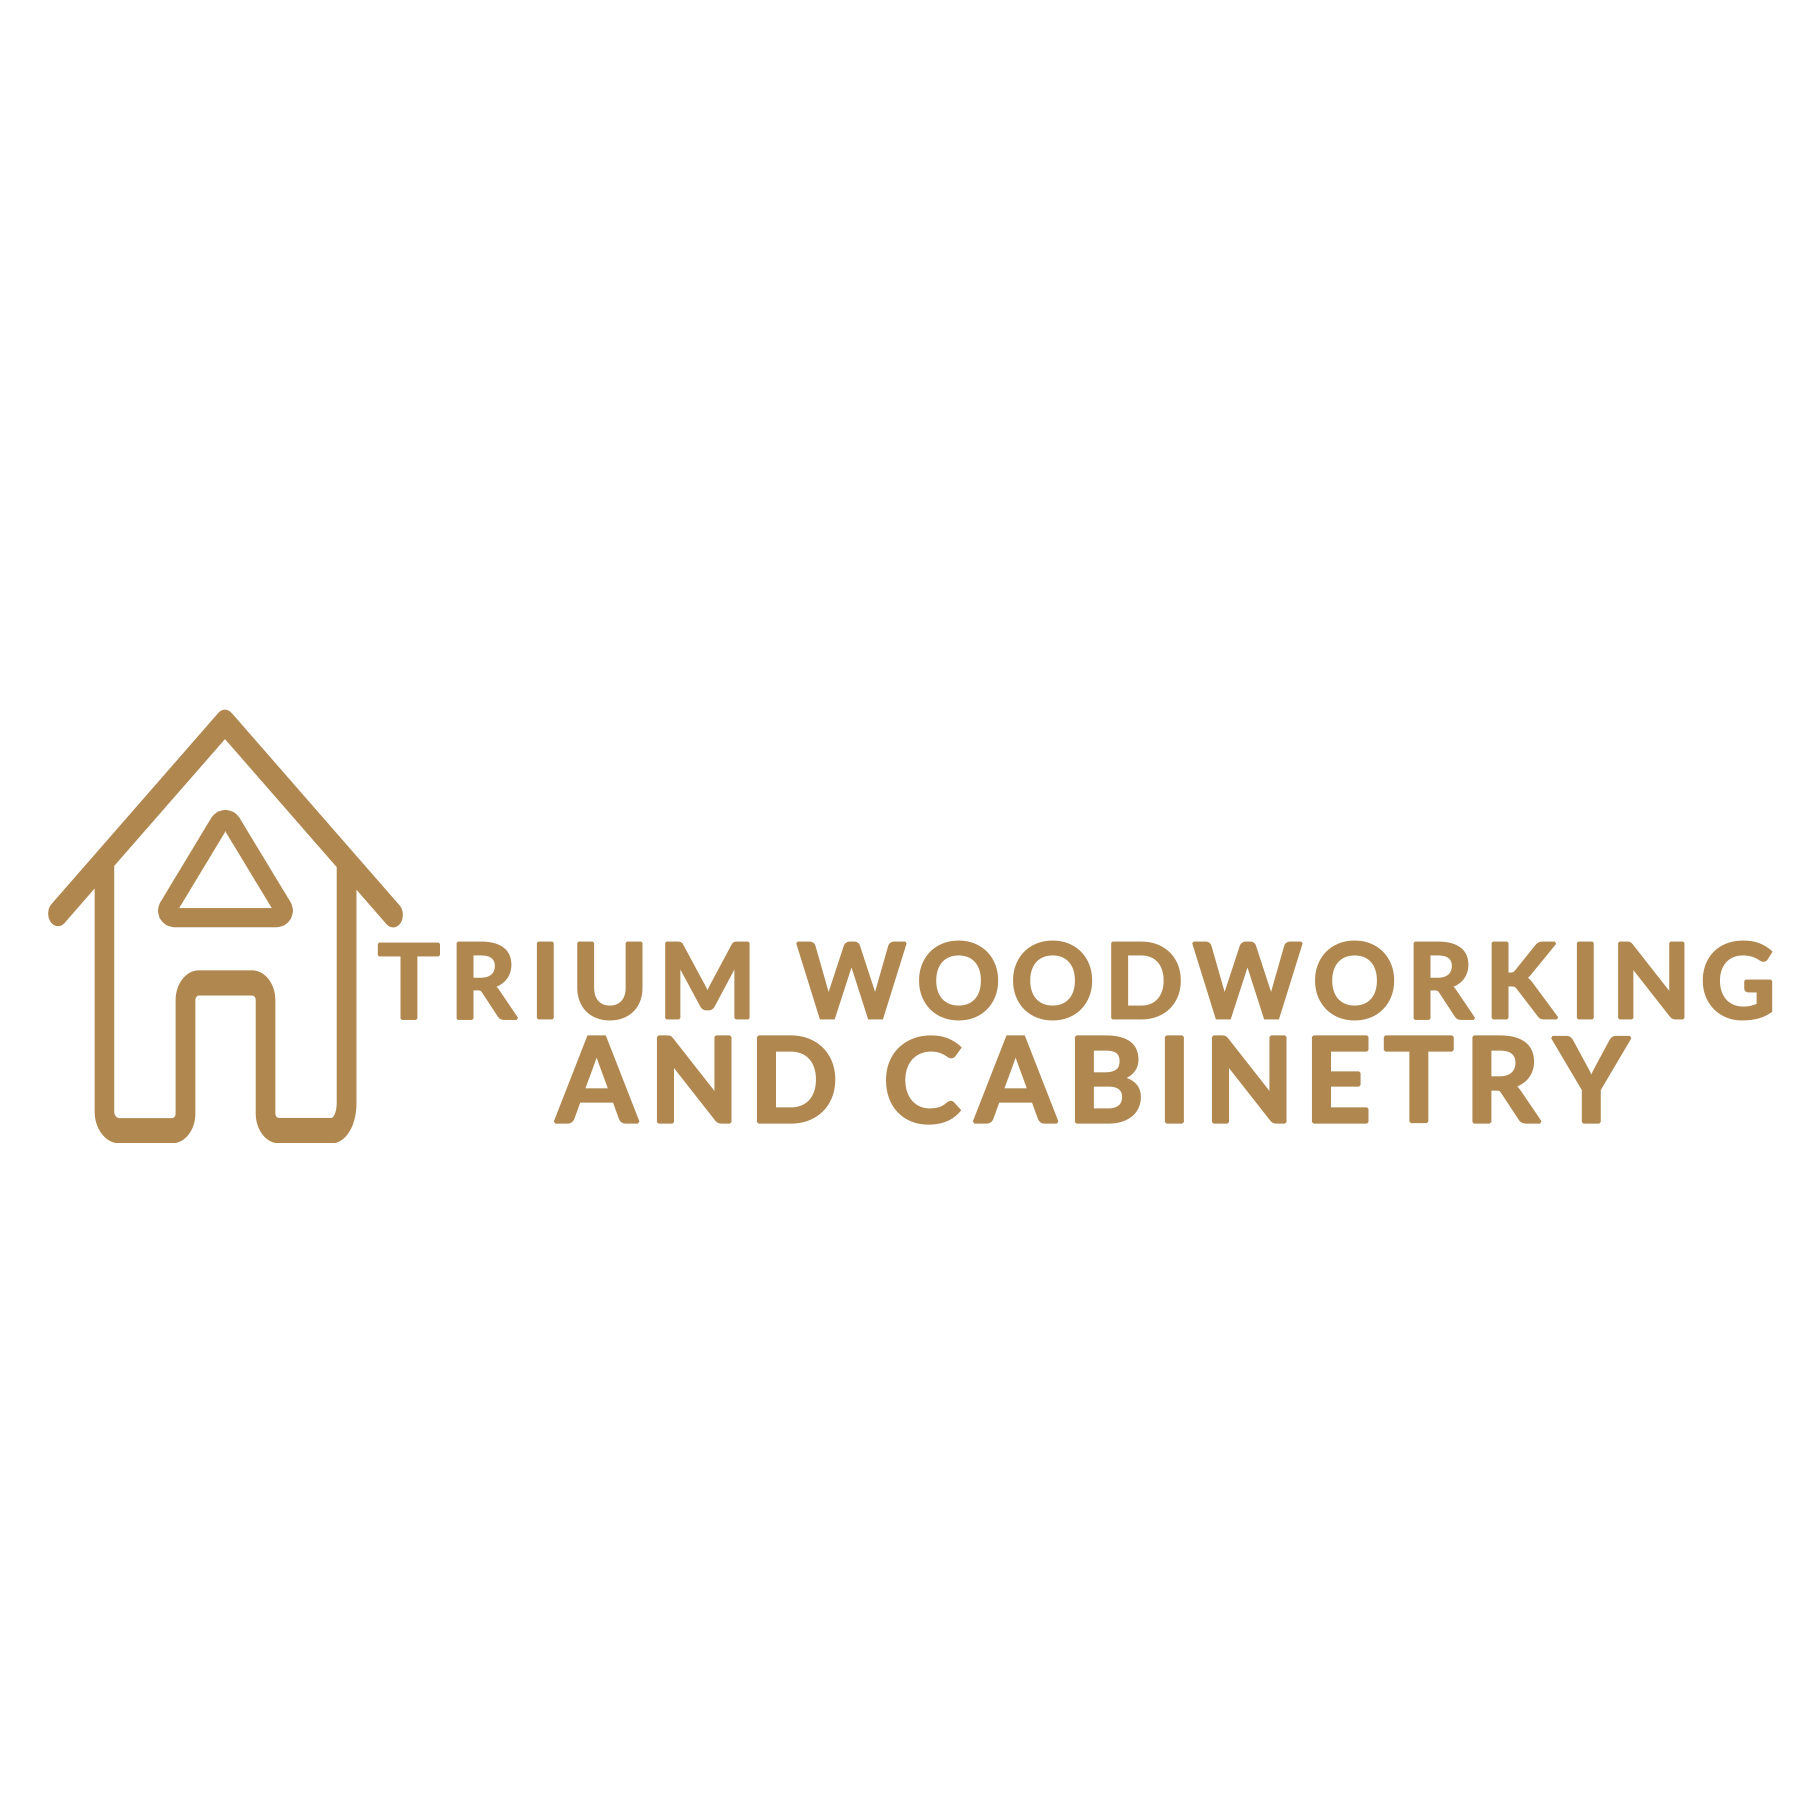 Atrium Woodworking and Cabinetry